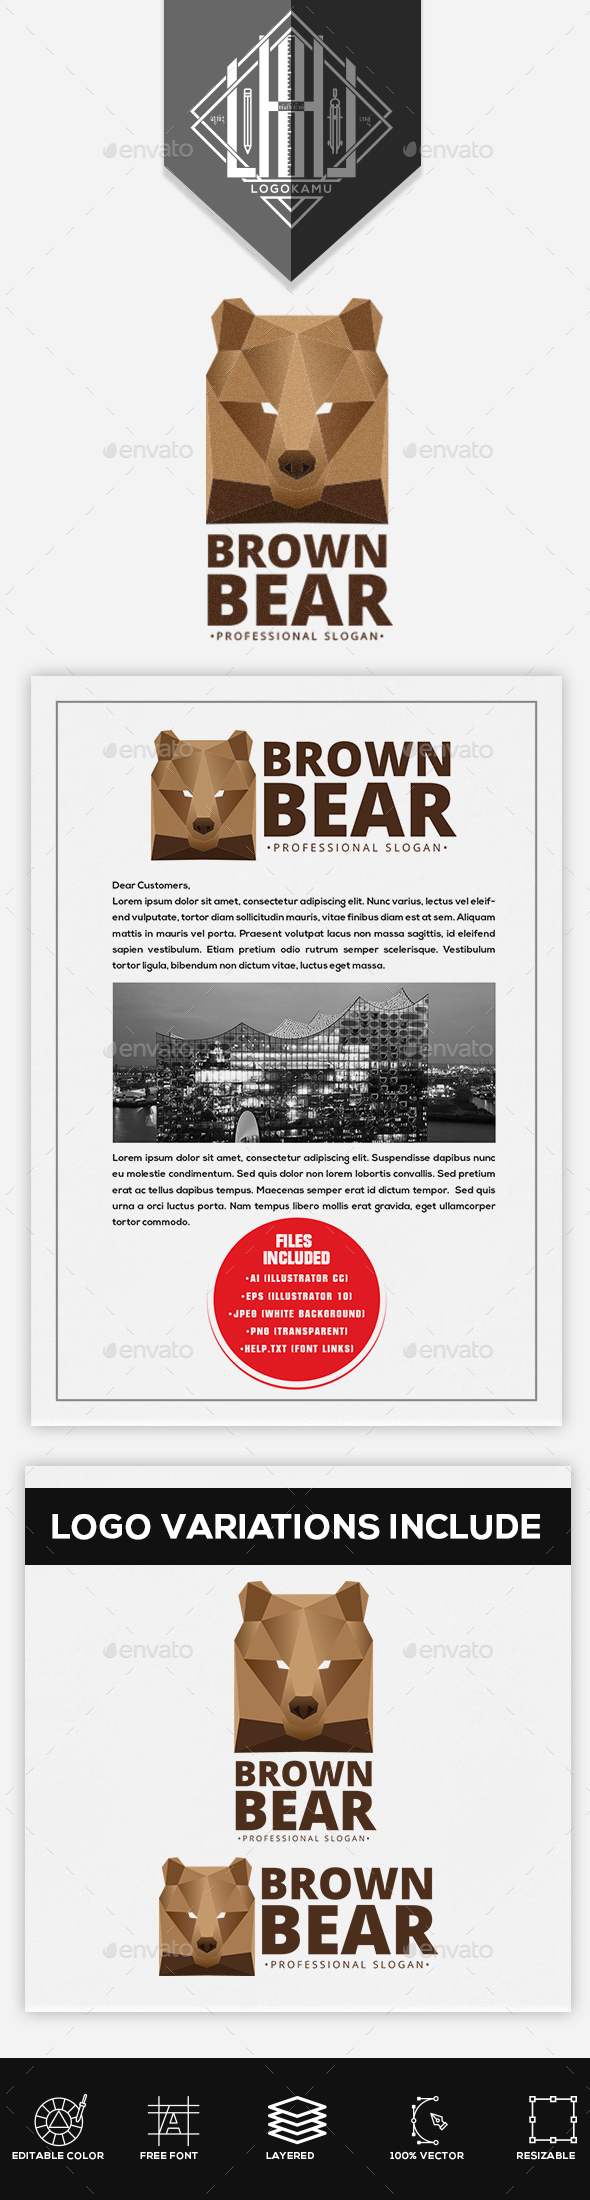 Brown Bear Logo - Animals Logo Templates